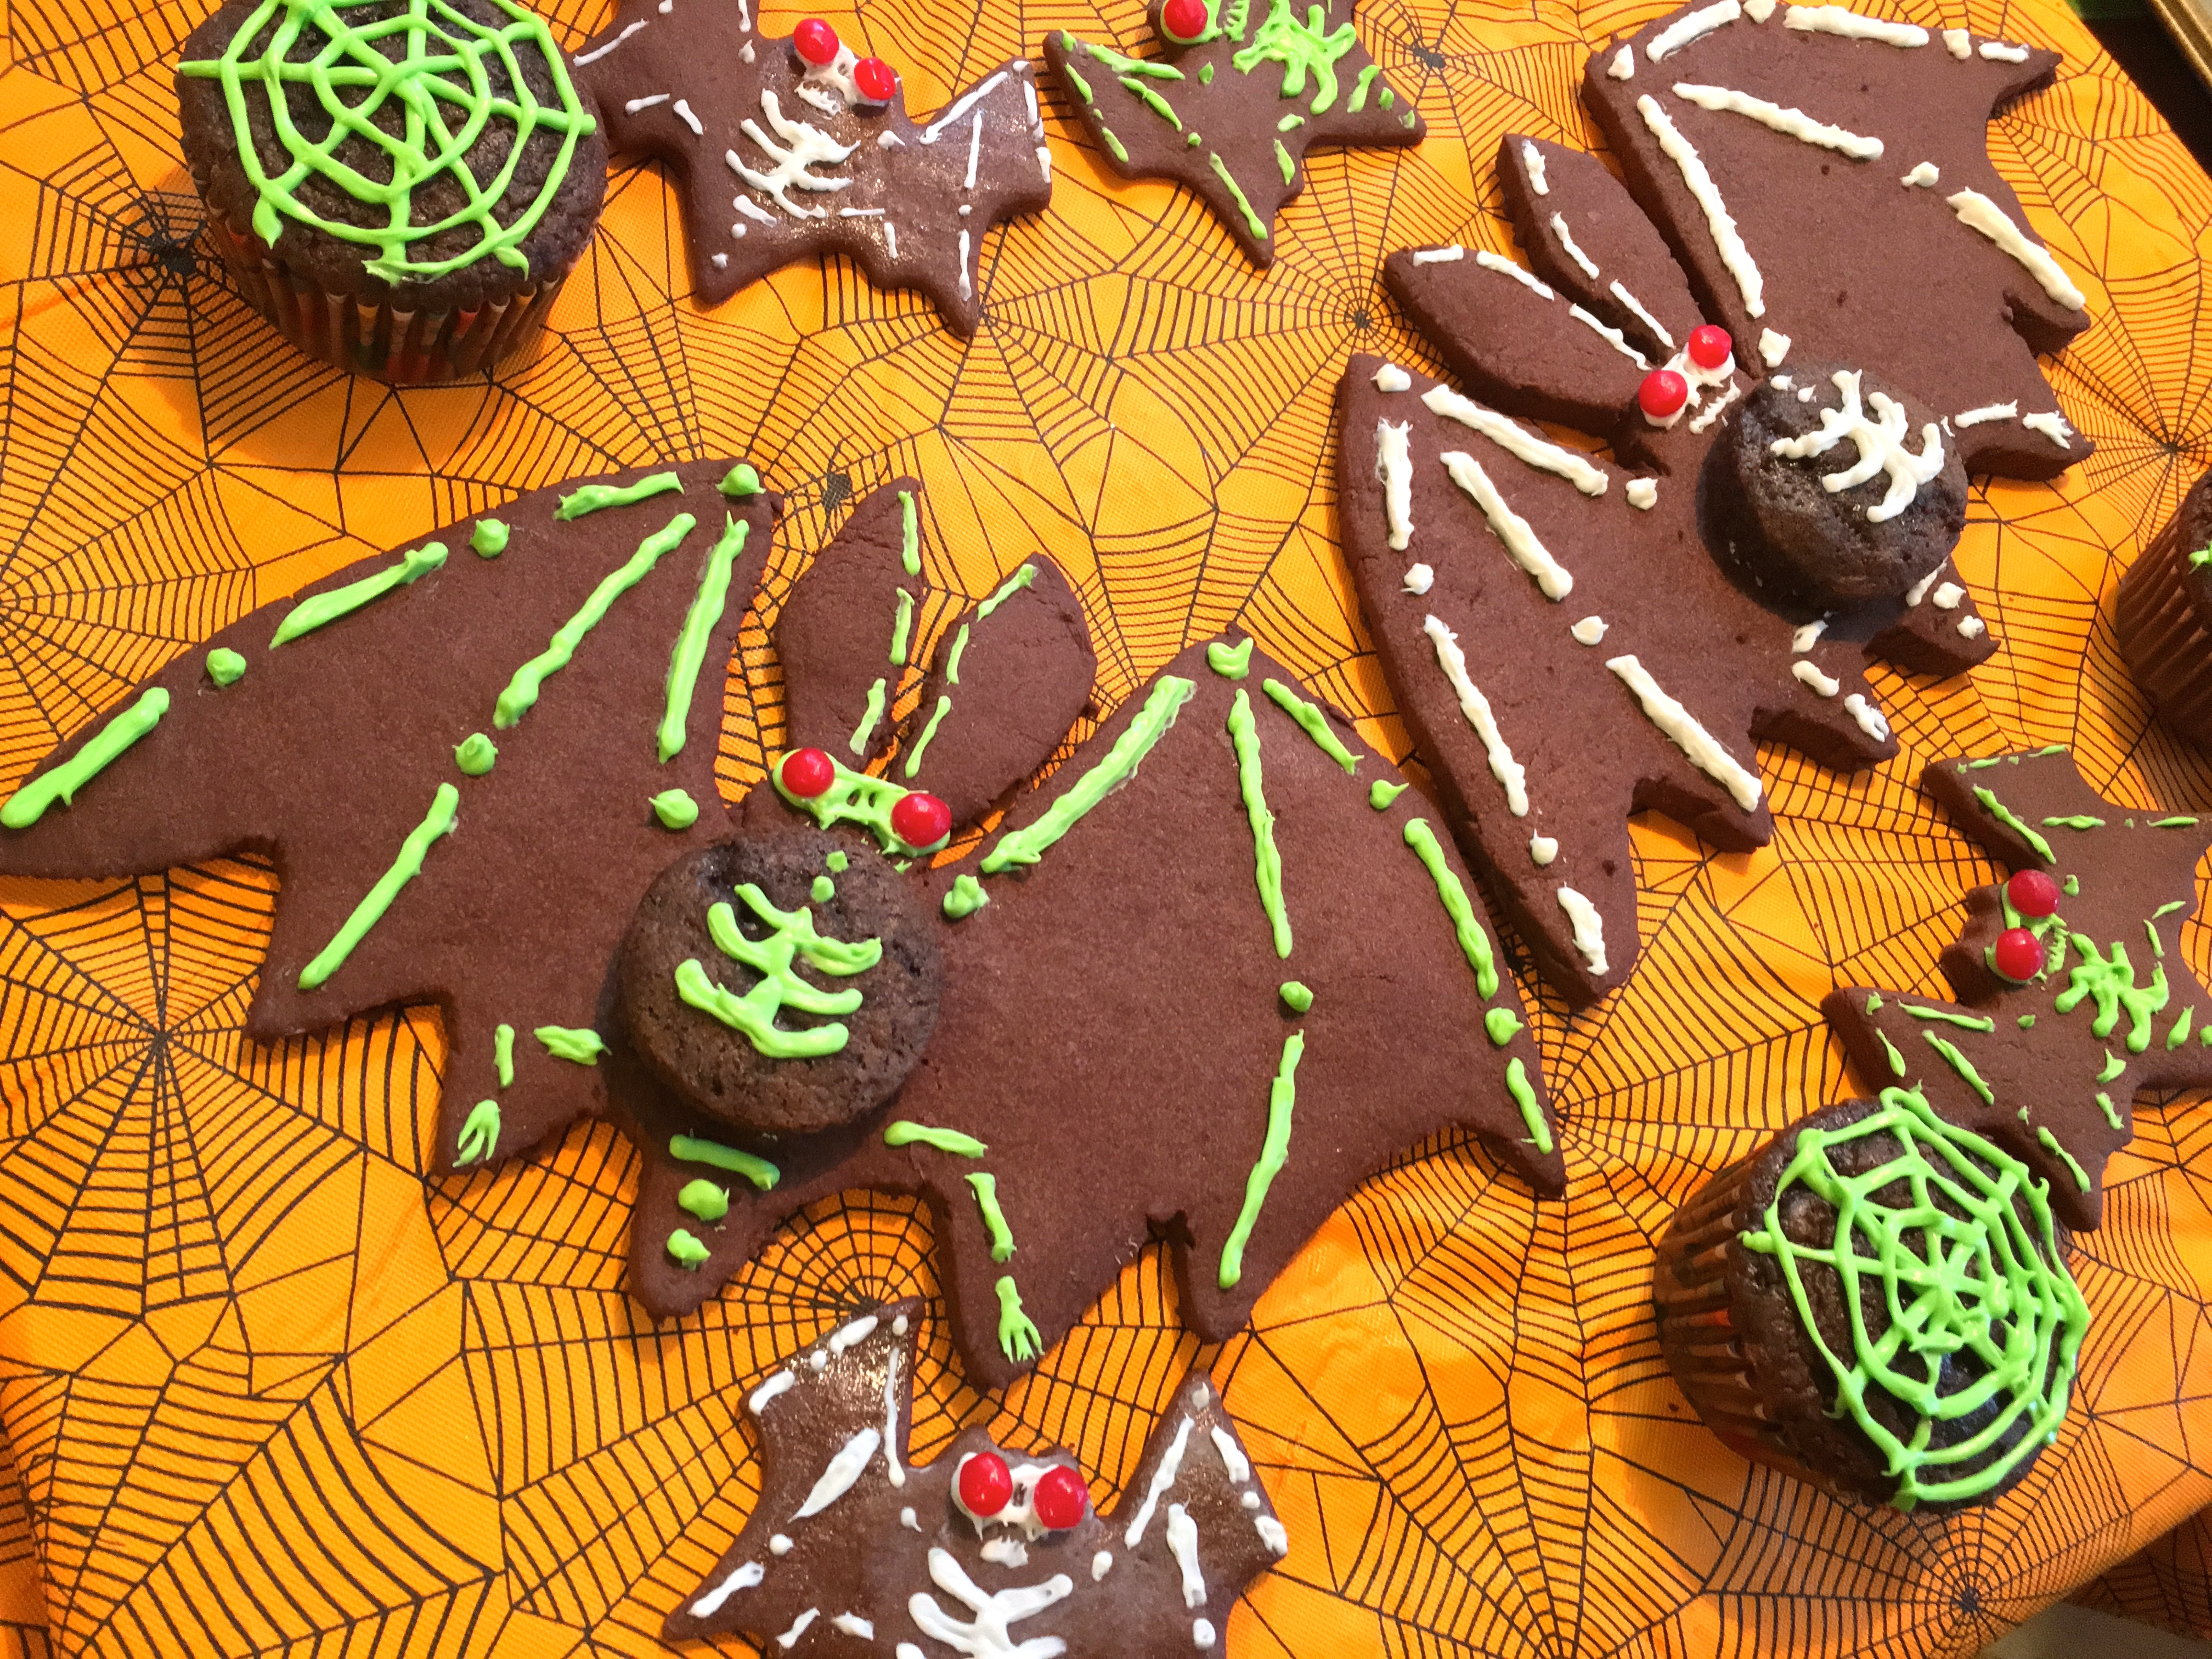 Picture of Decorating the Bat Cookies